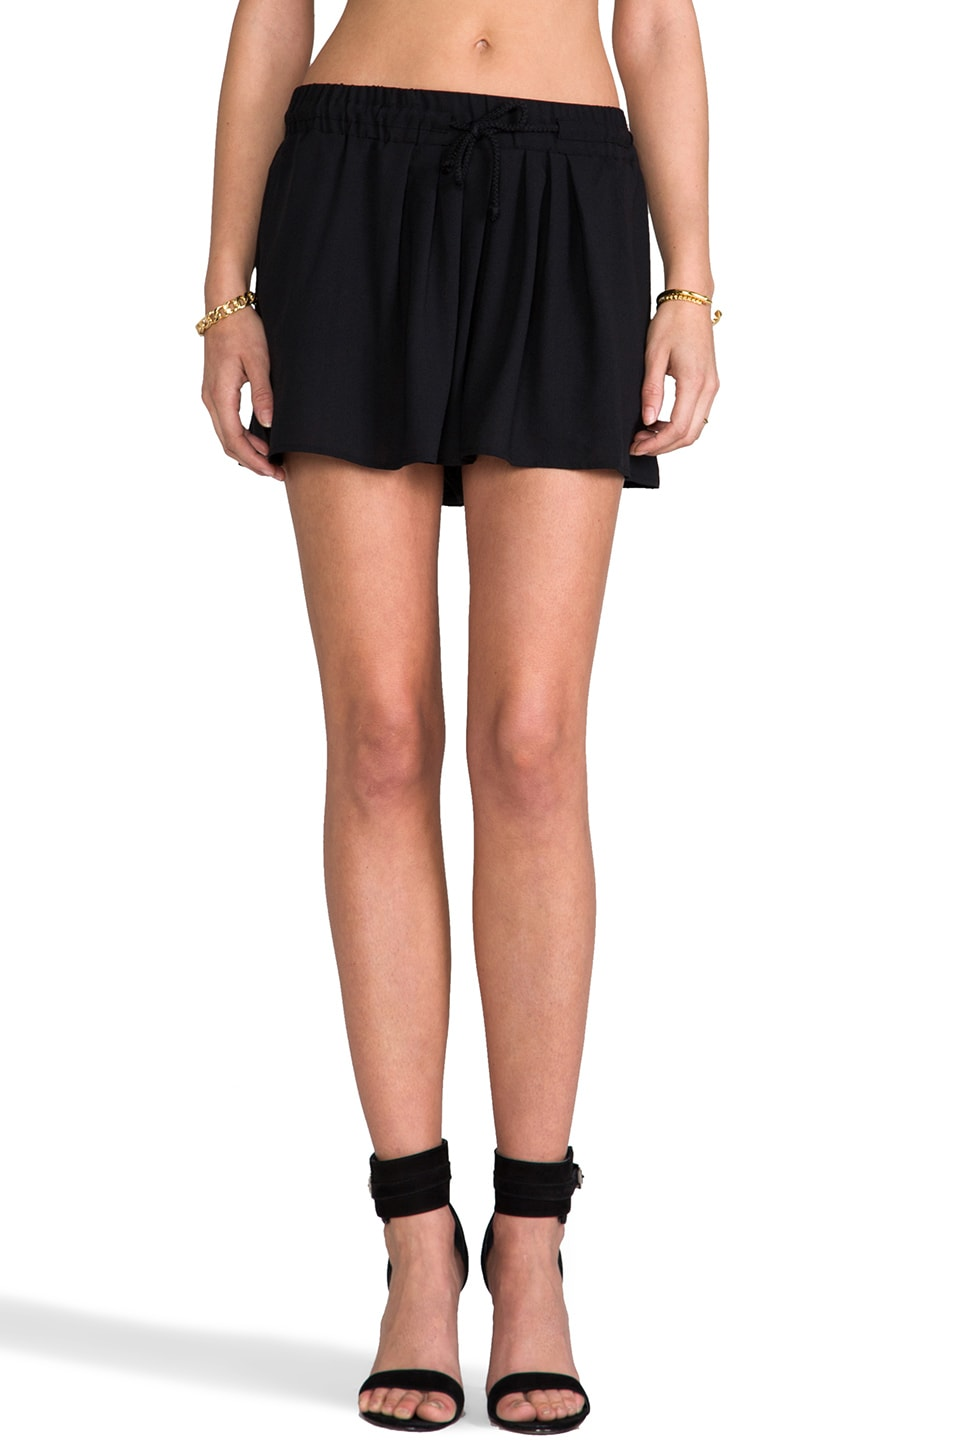 BY ZOE Tania Shorts in Black